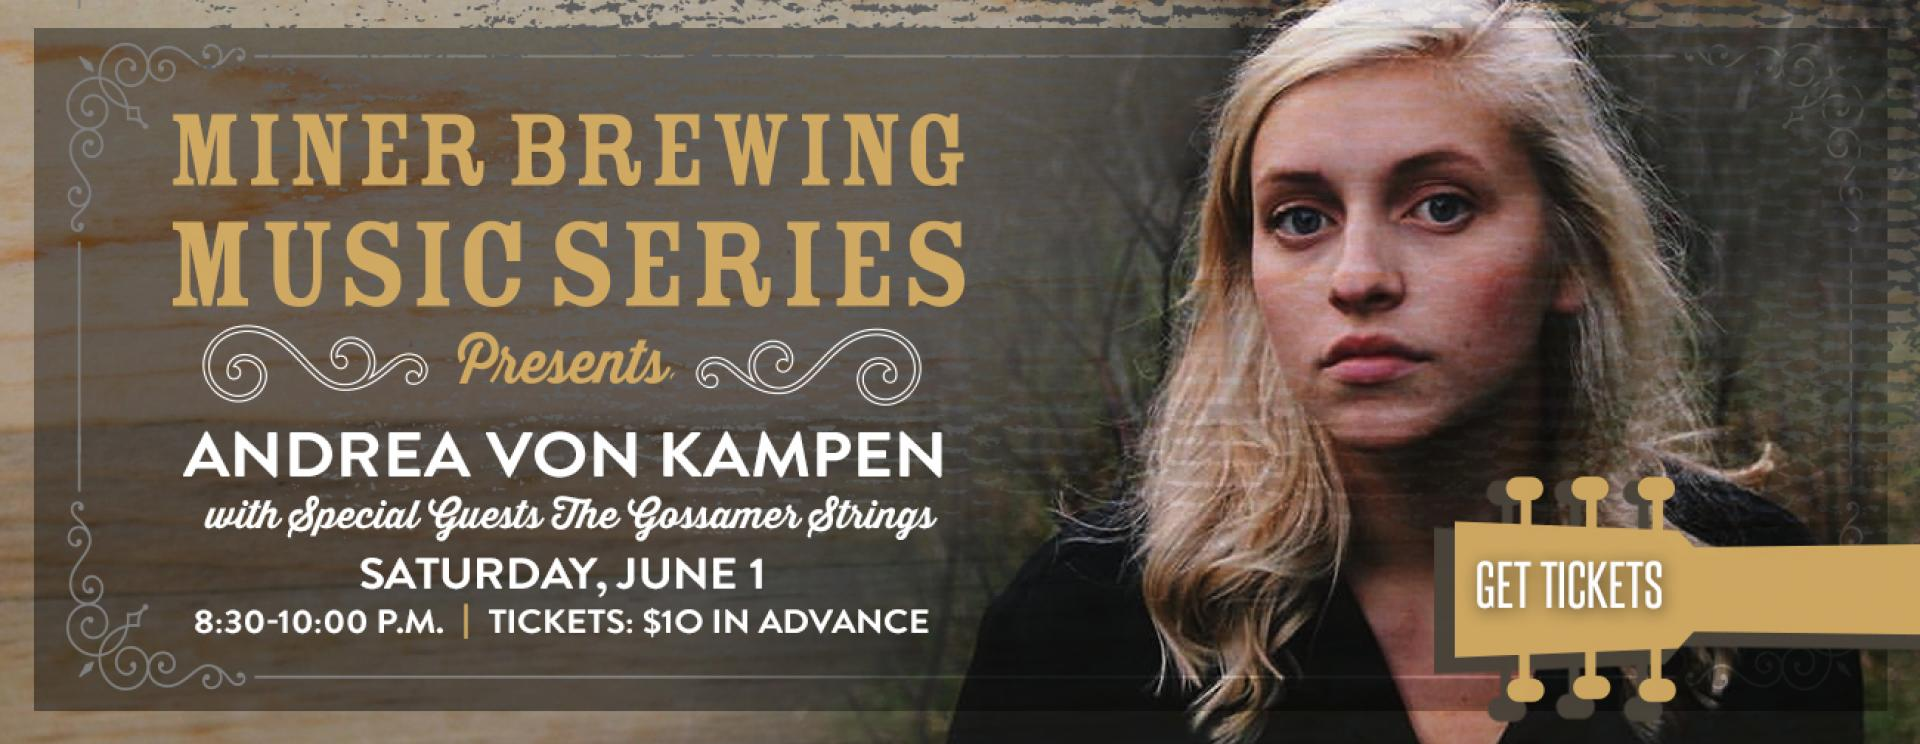 Miner Brewing Music Series Presents: Andrea von Kampen with special guests The Gossamer Strings